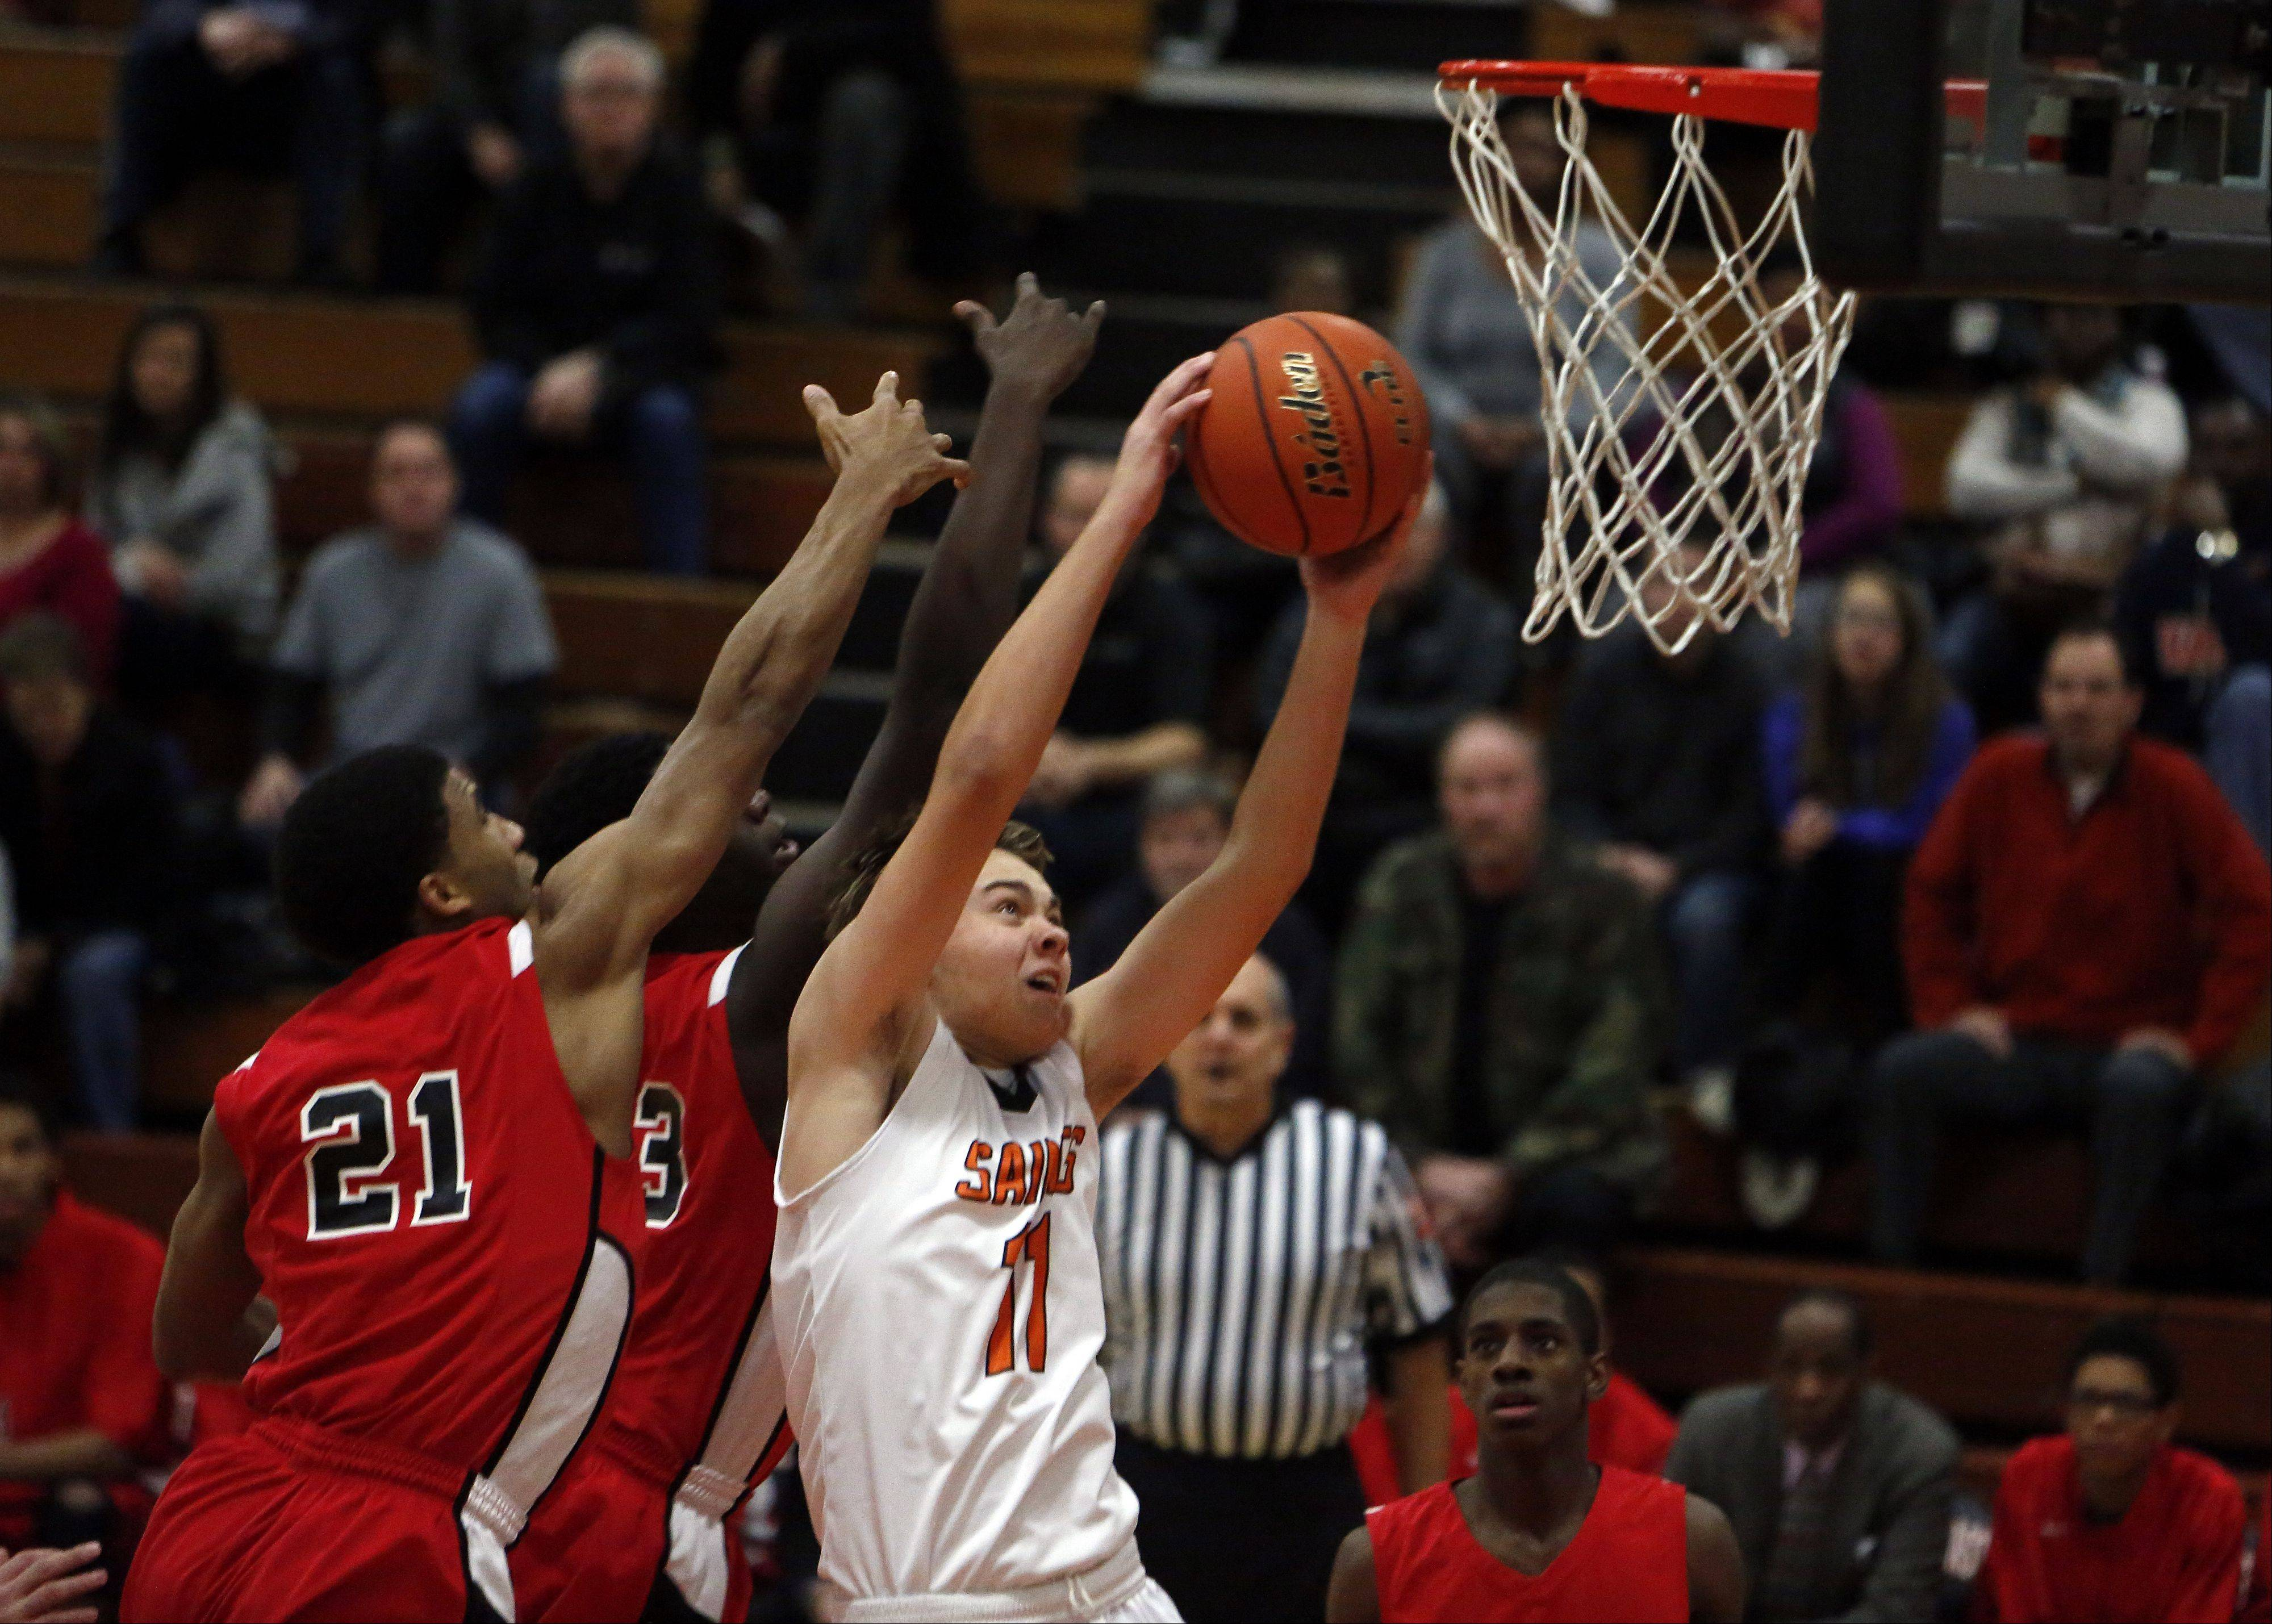 St. Charles East's Mick Vyzral, 11, goes strong to the hoop past St. Joe's Joffery Brown.